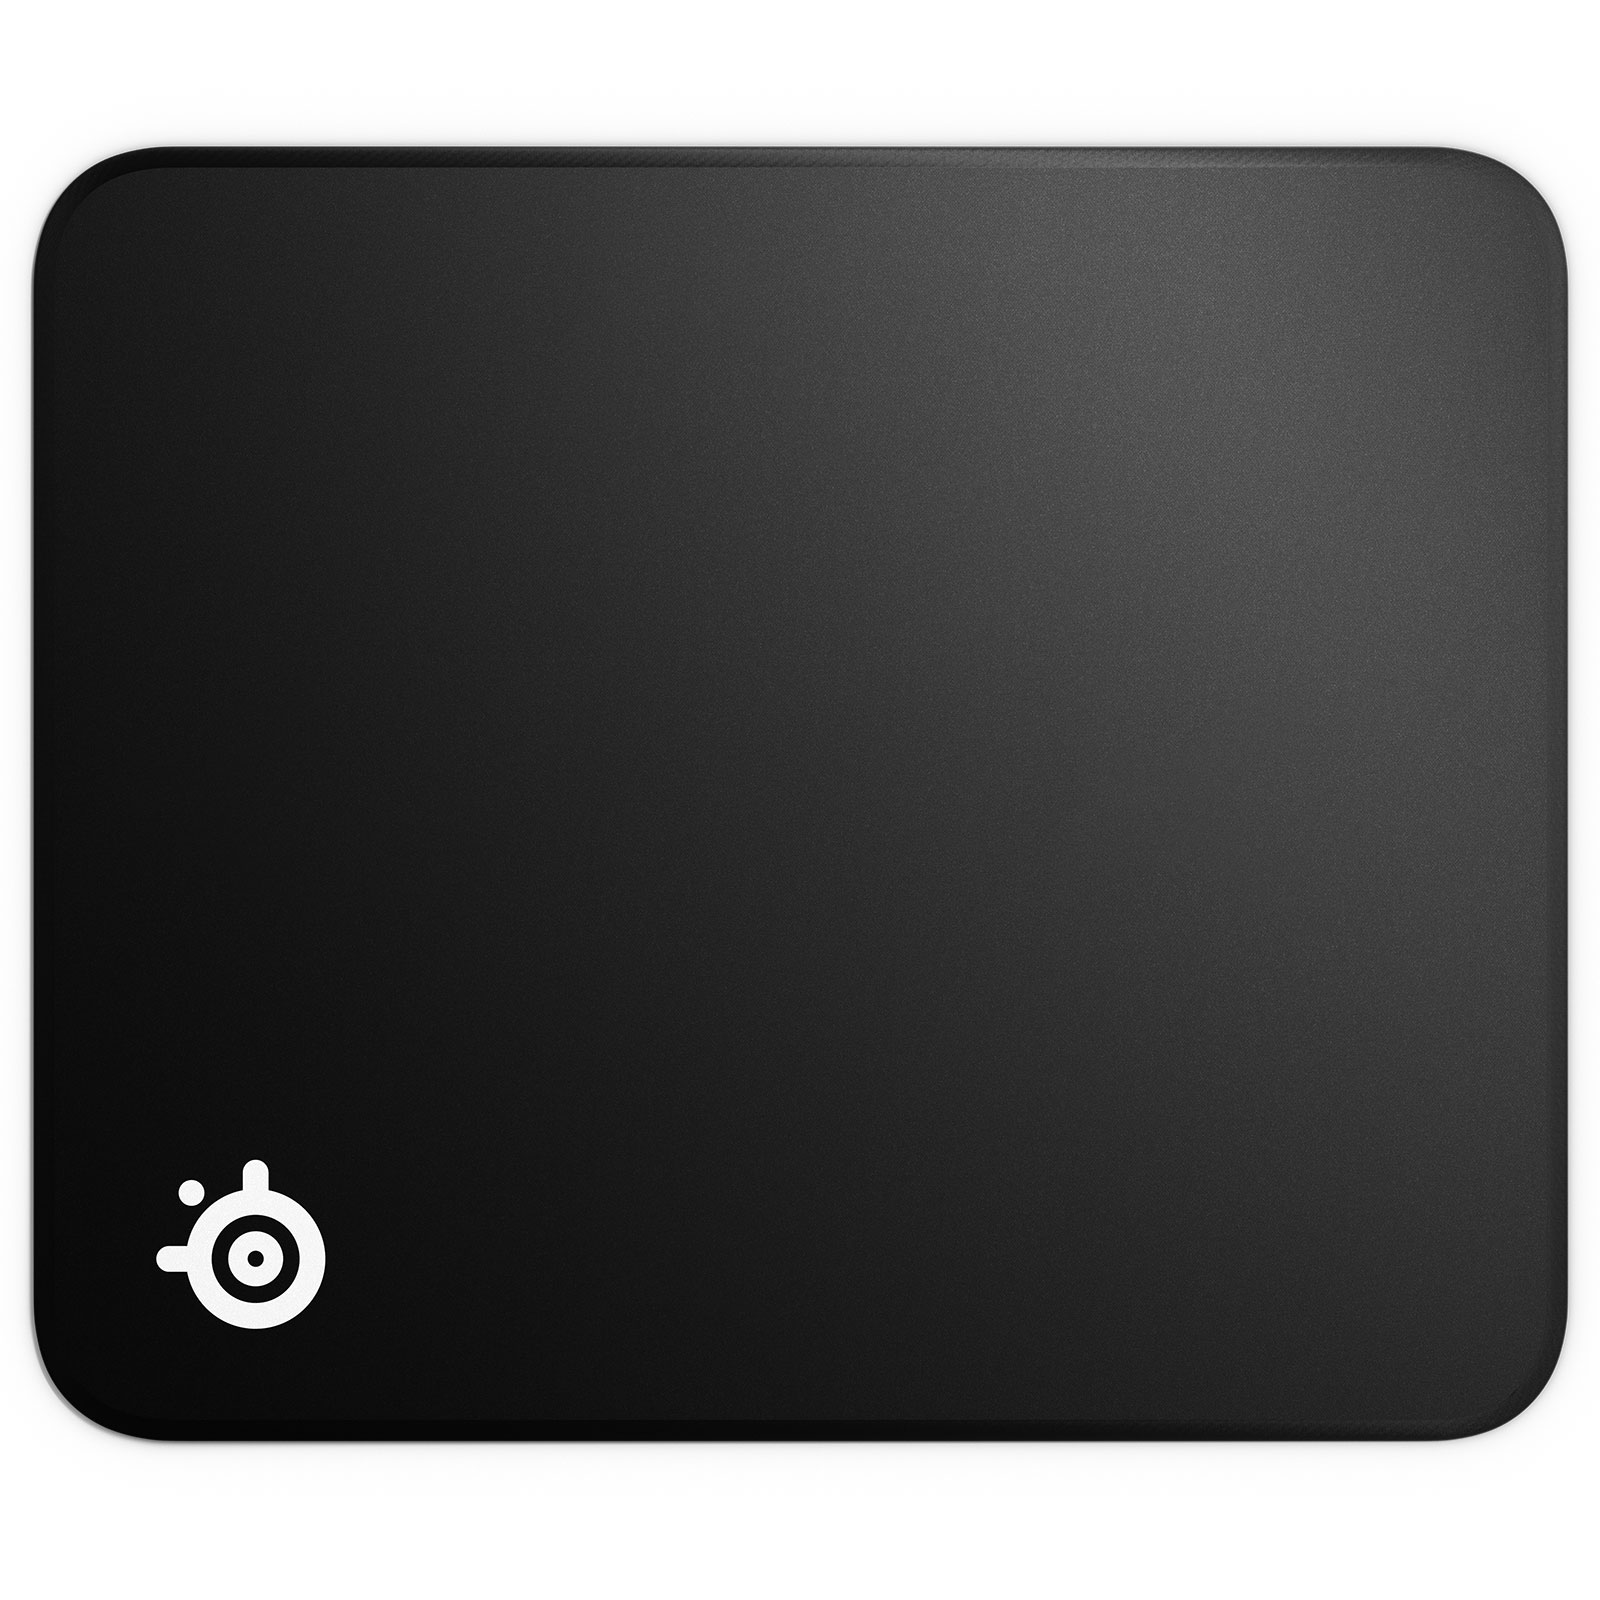 Steelseries qck edge medium tapis de souris steelseries sur - Steelseries tapis de souris ...